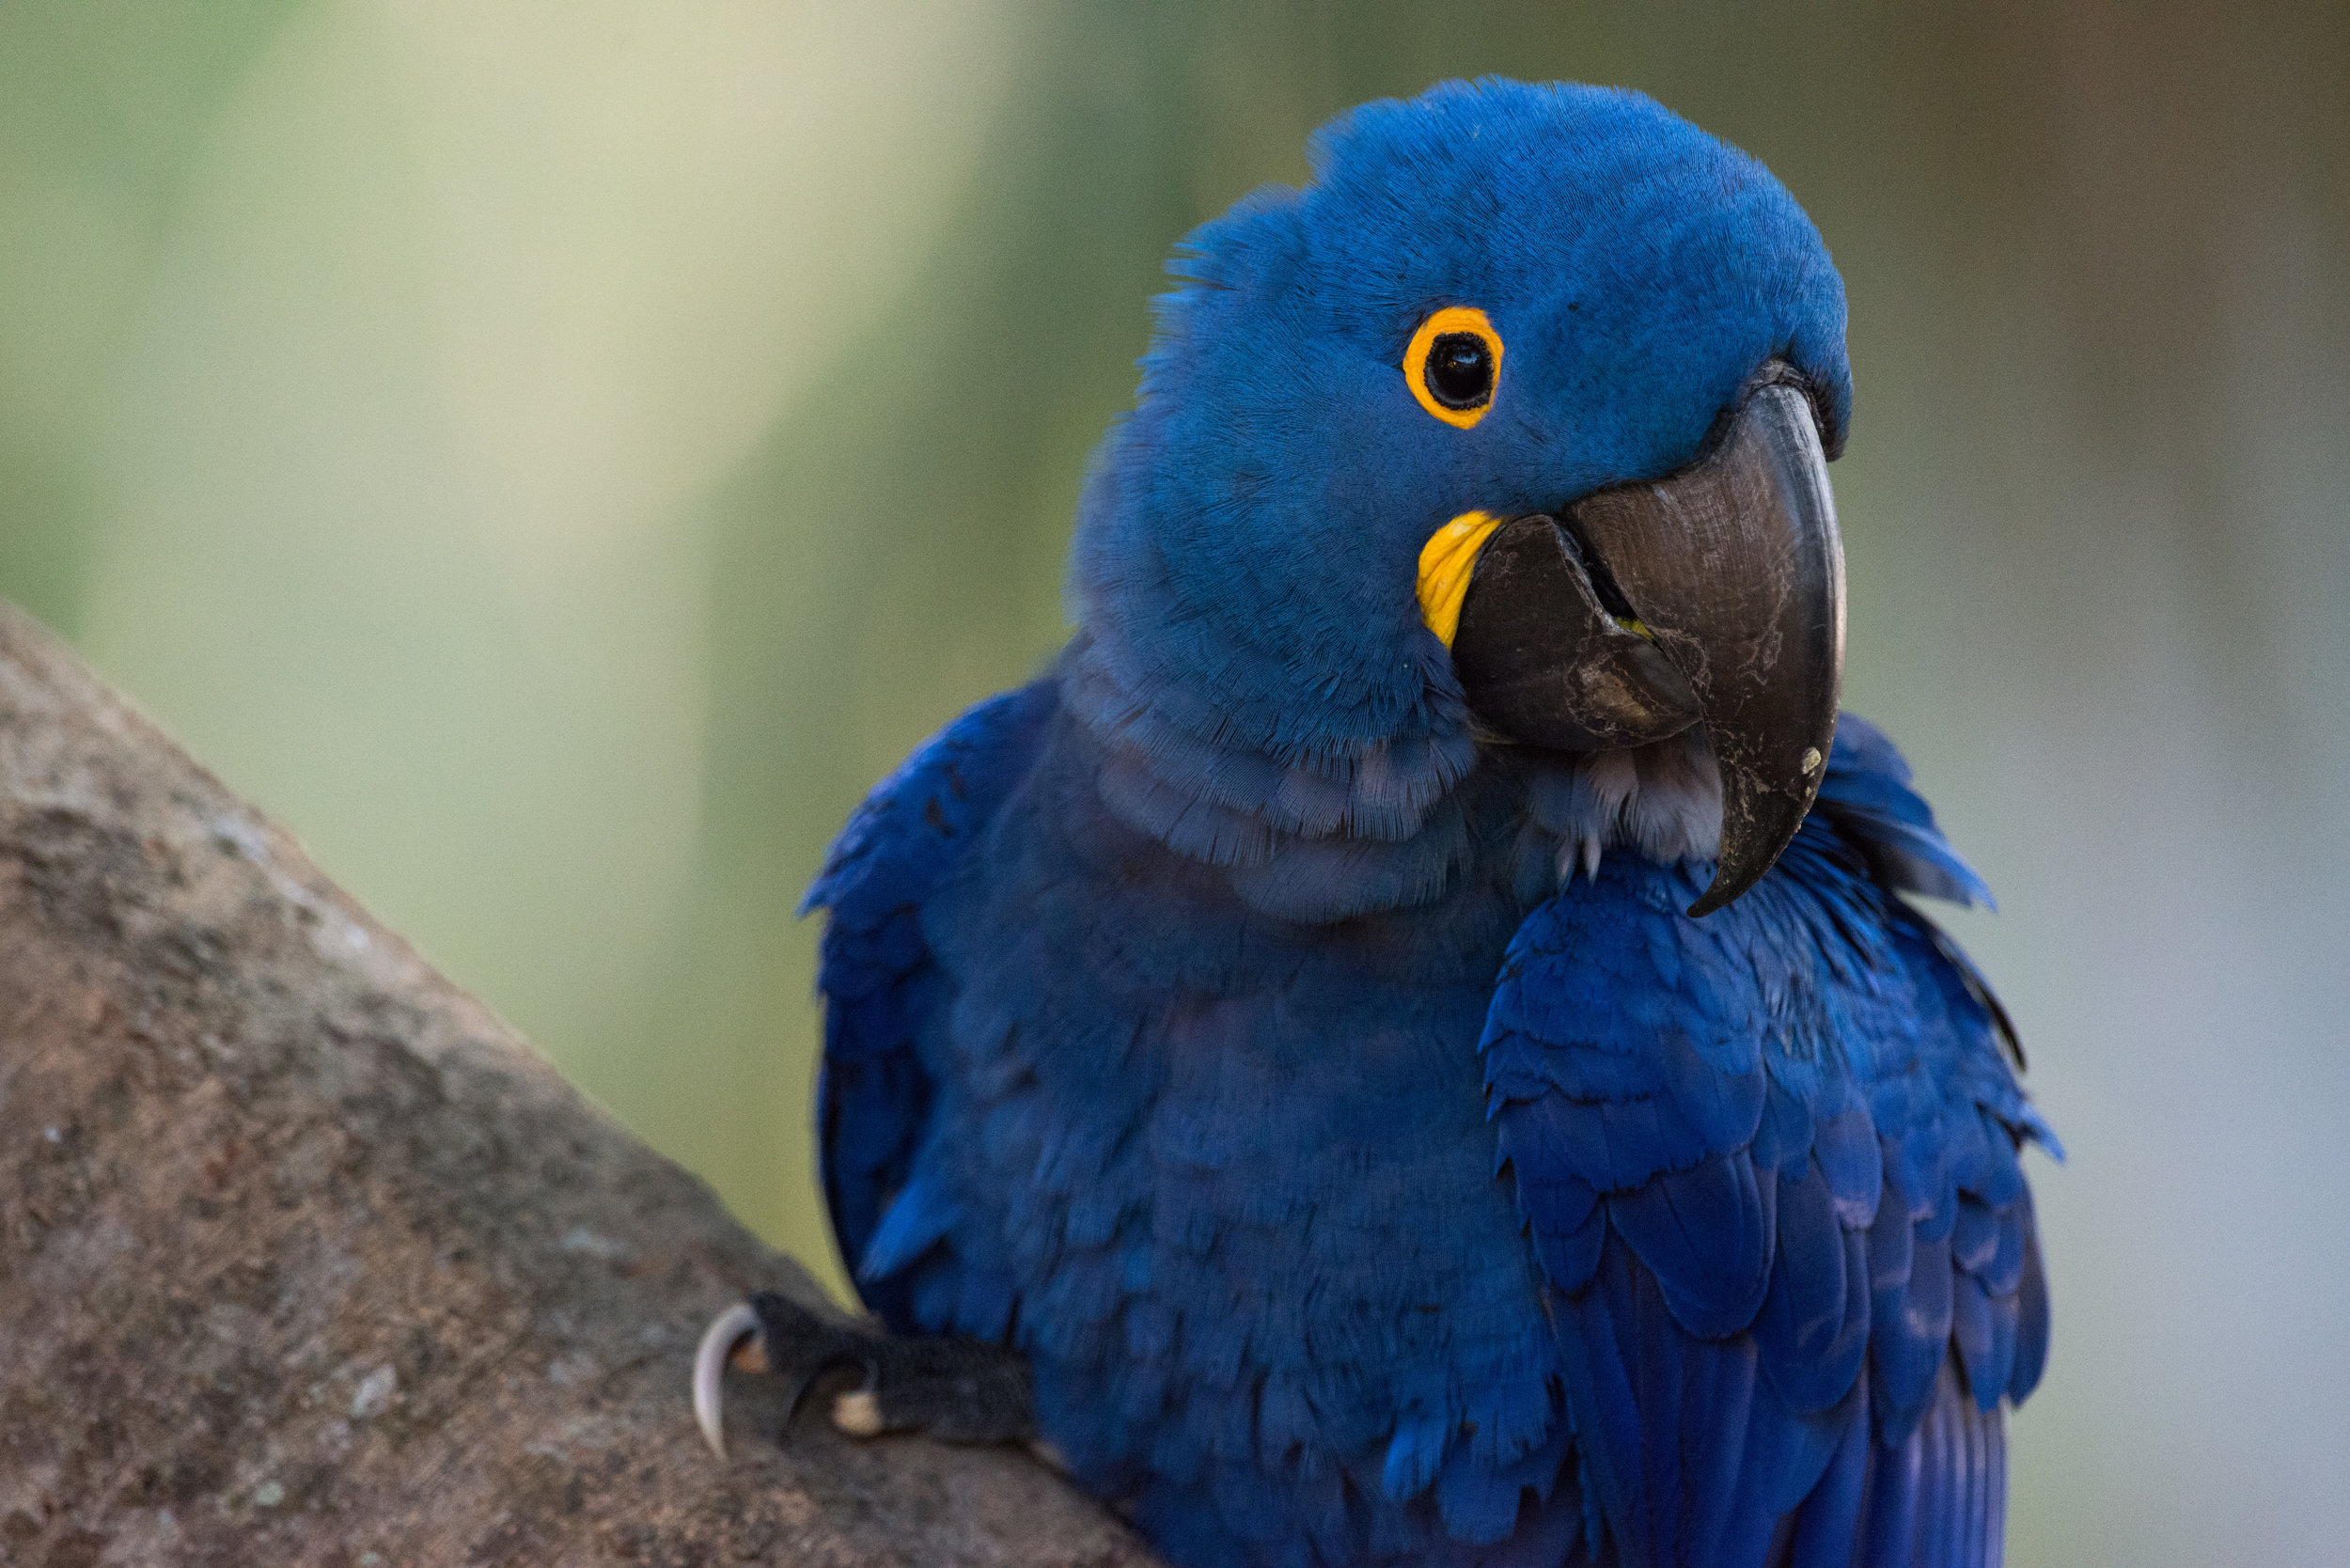 Hyacinth Bucket...sorry, macaw